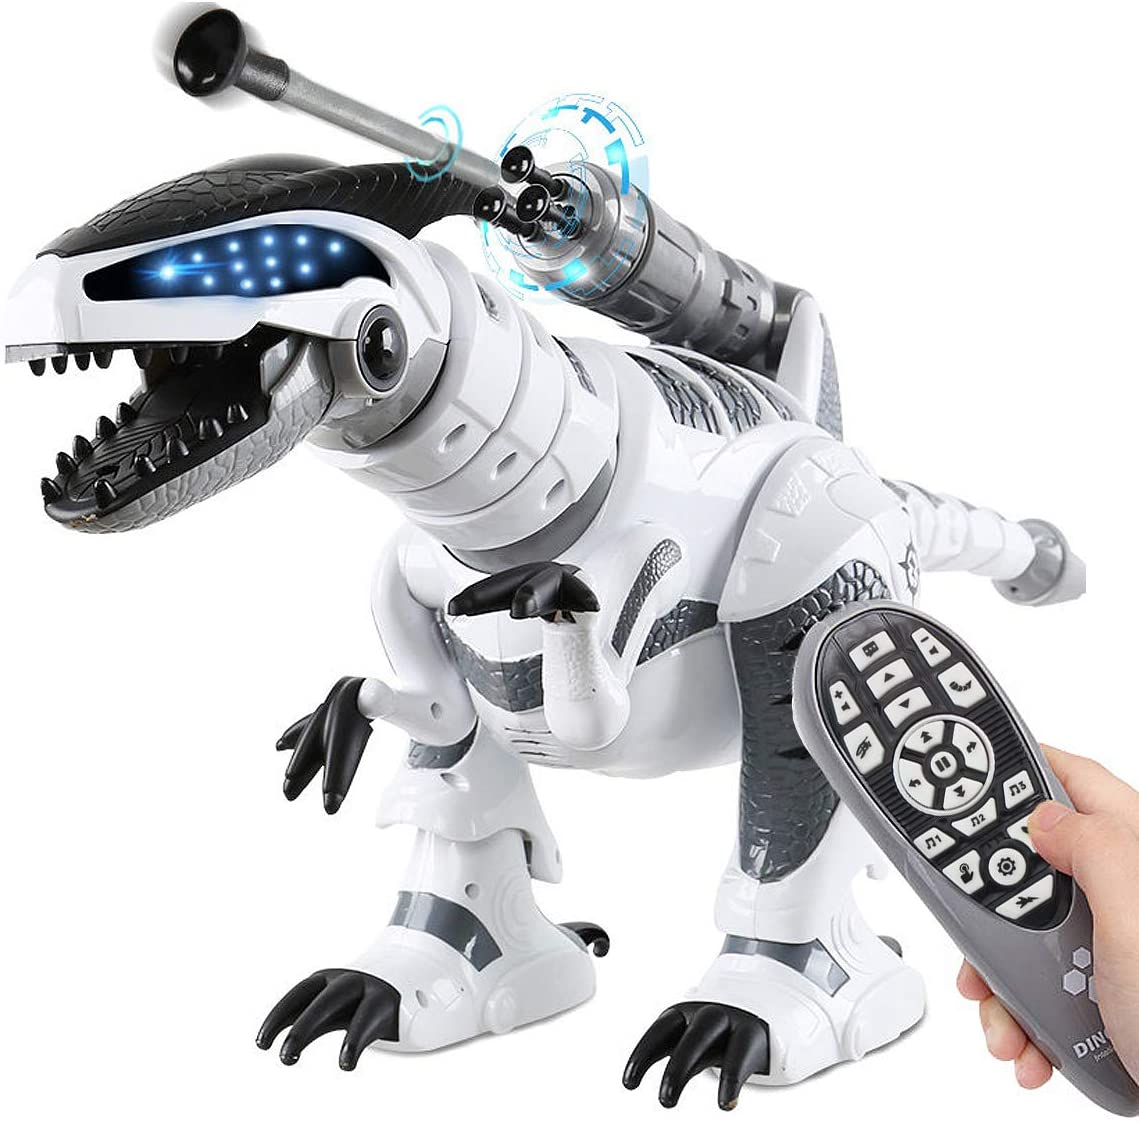 Top 10 Best Remote Control Dinosaurs (Gift Idea) For Toddlers 2